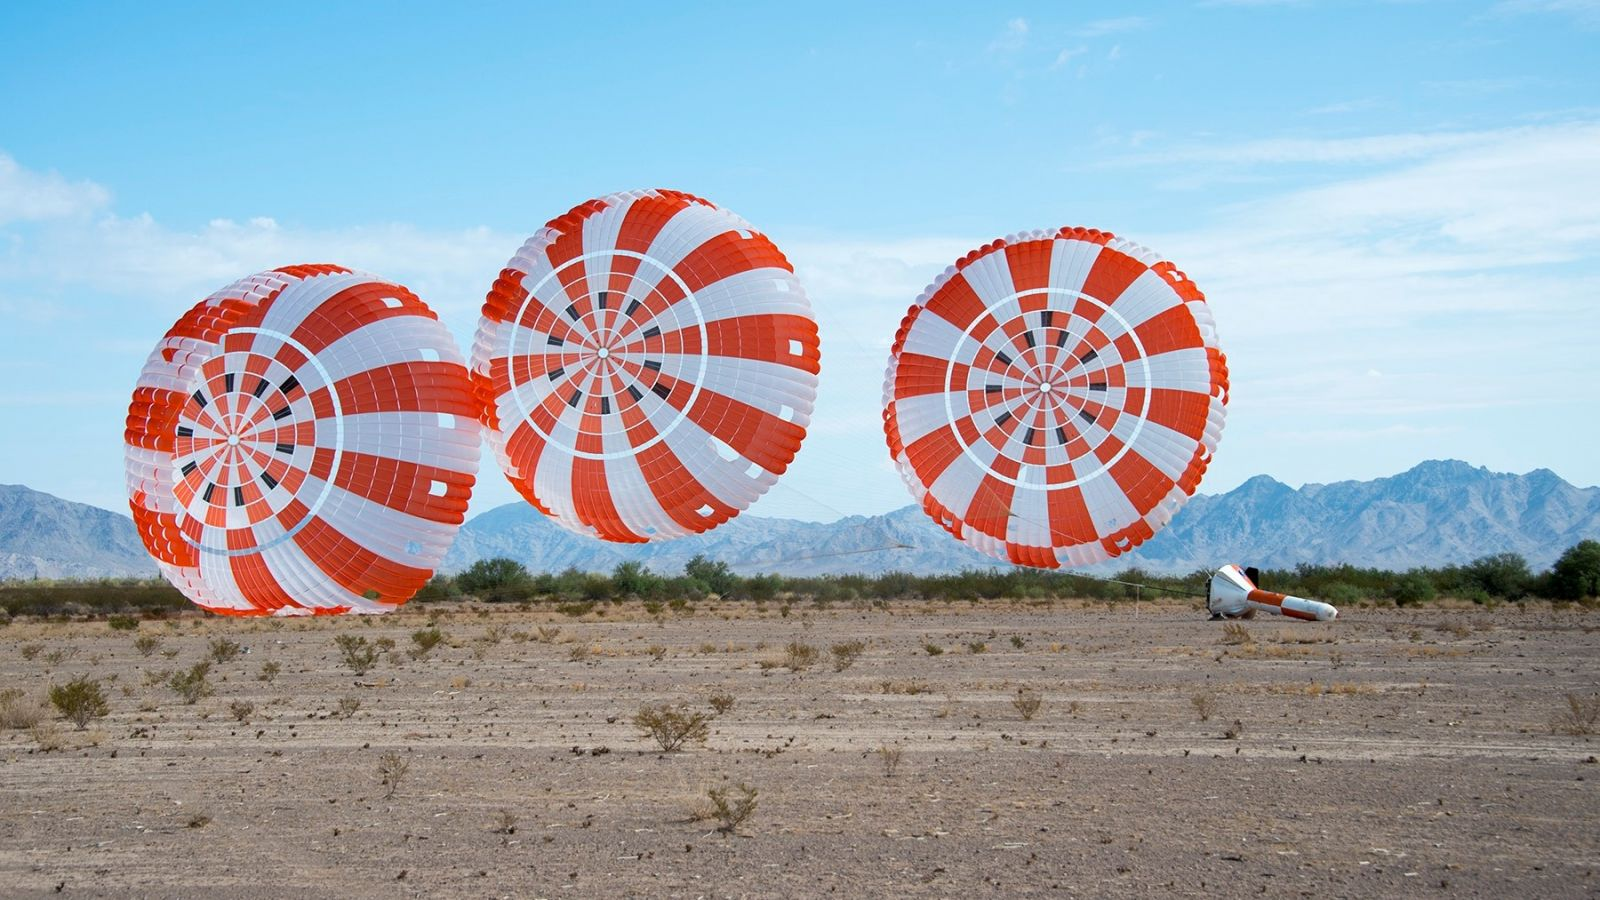 Orion's parachute system completes the seventh drop in a series of eight qualification tests. Photo Credit: NASA